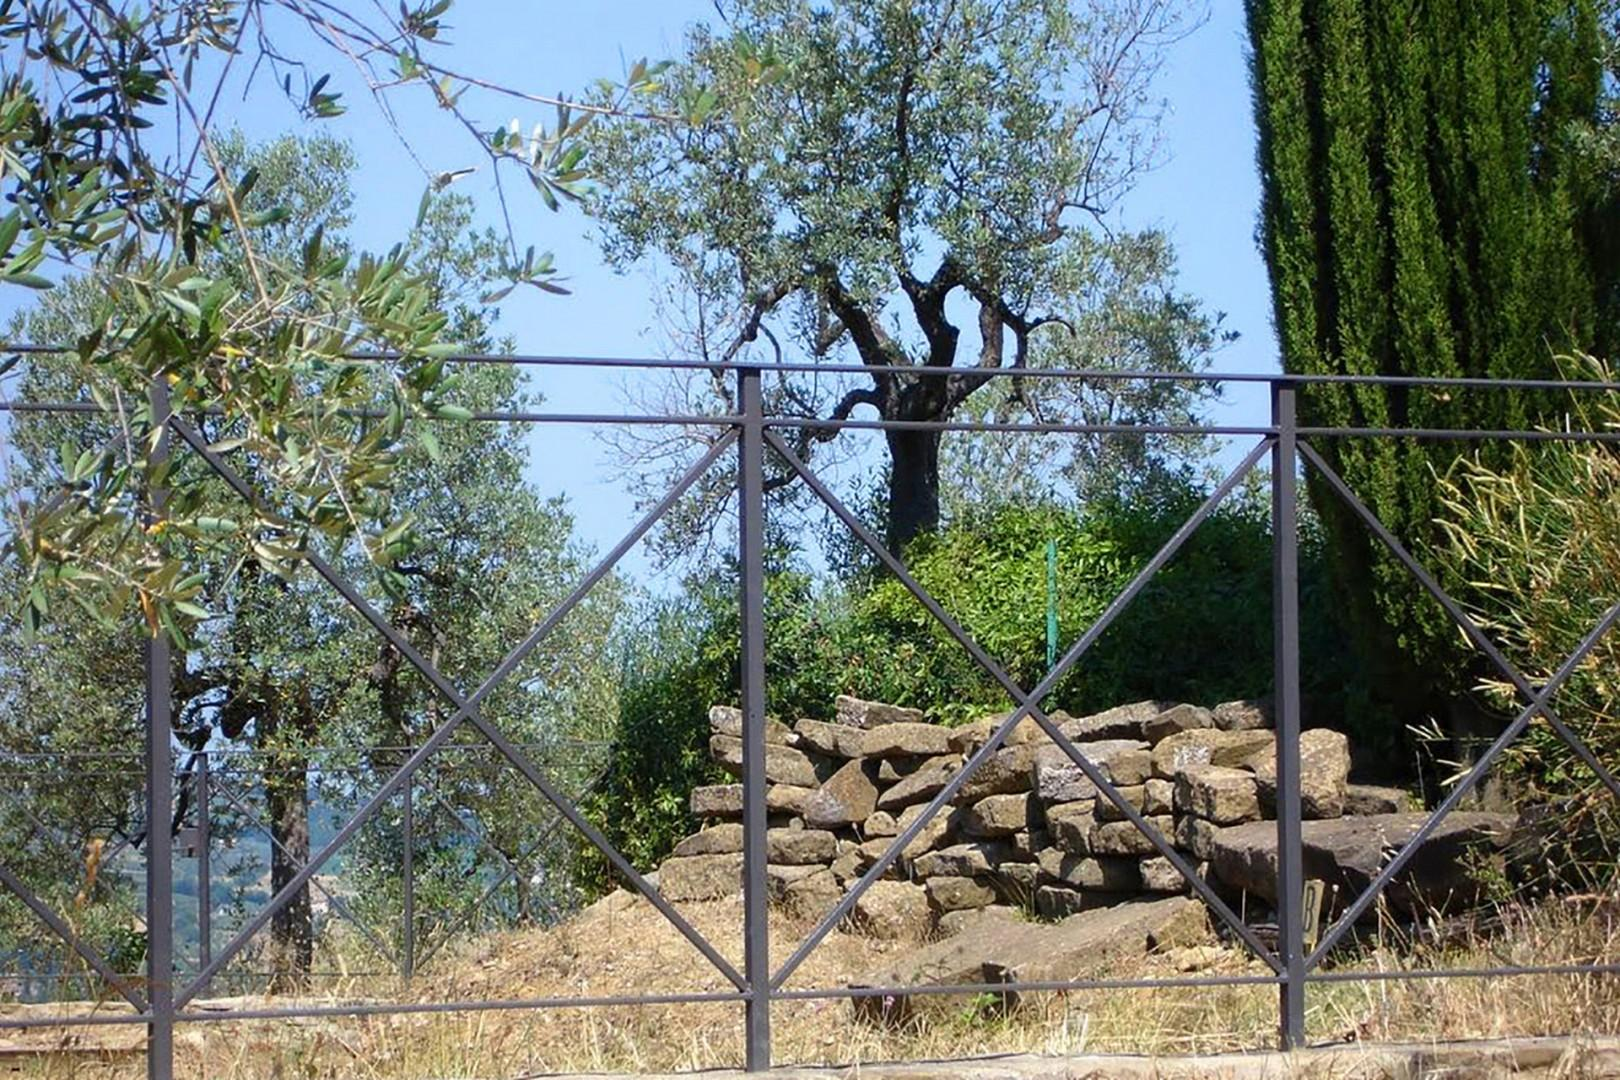 The Tomb of the Archers is in ruins but there is find a reconstruction of the ancient Etruscan tomb.